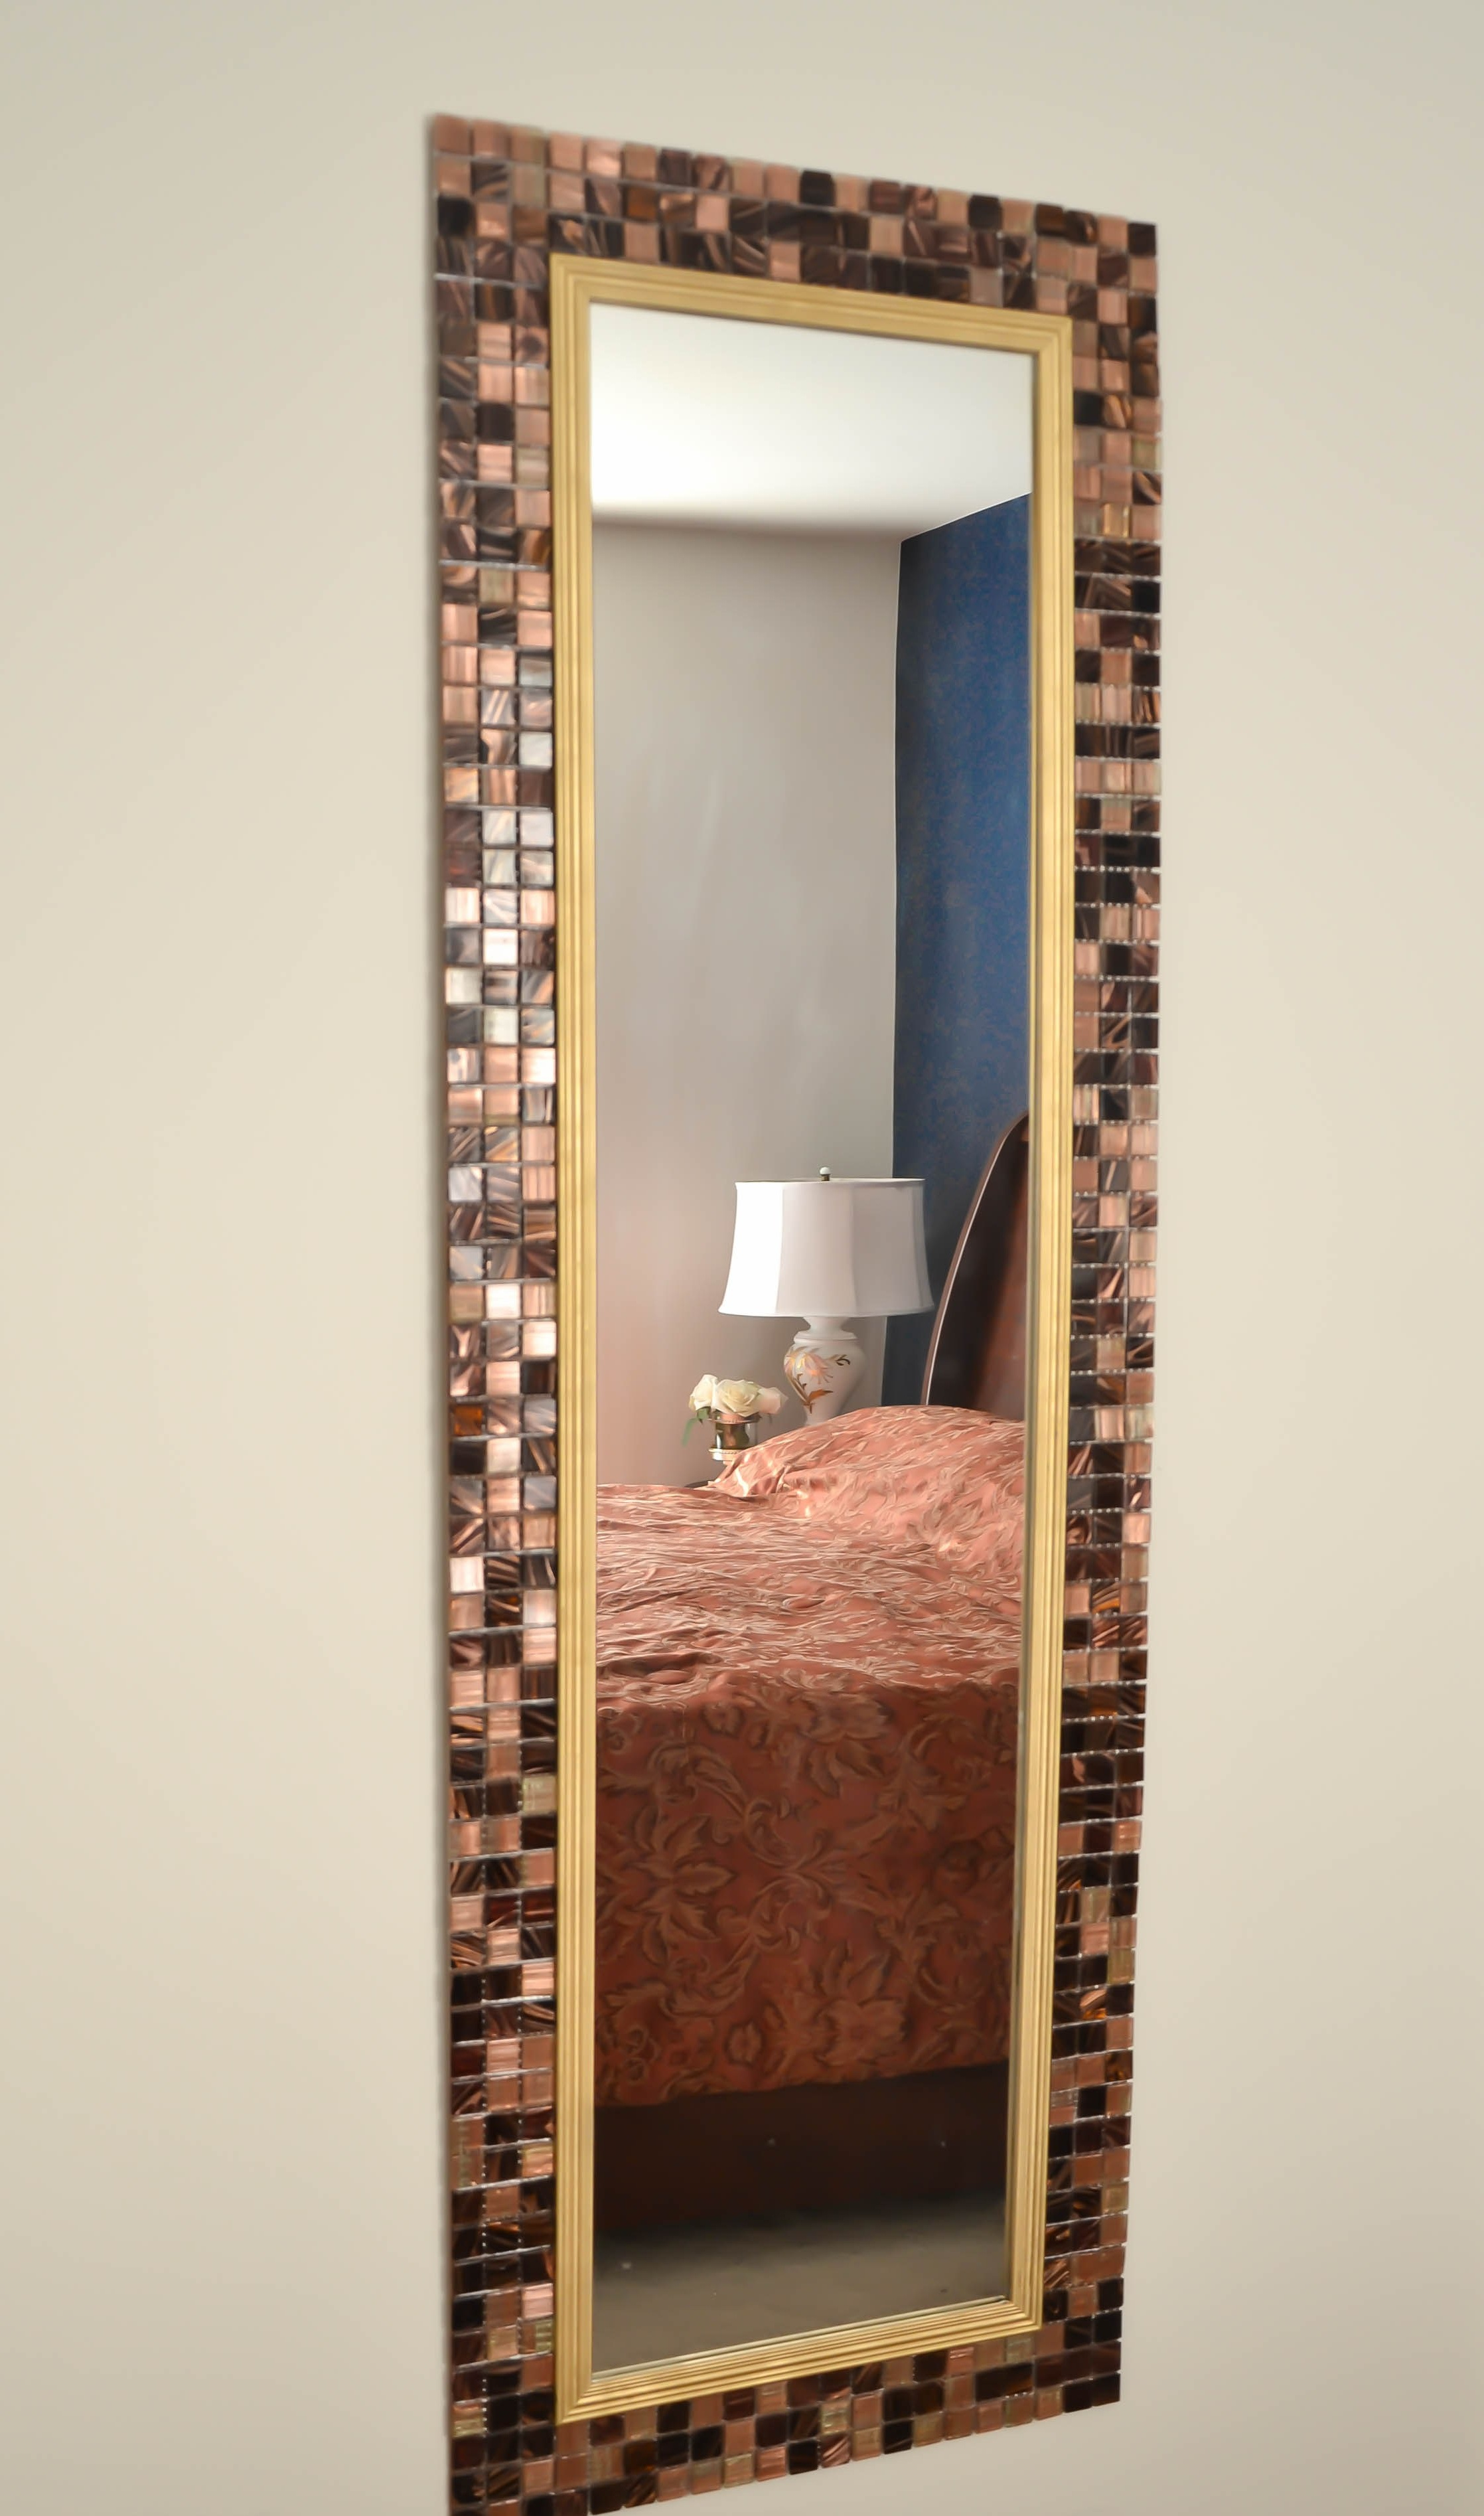 Diy cadre de miroir en carrelage mosa que for Miroir en mosaique